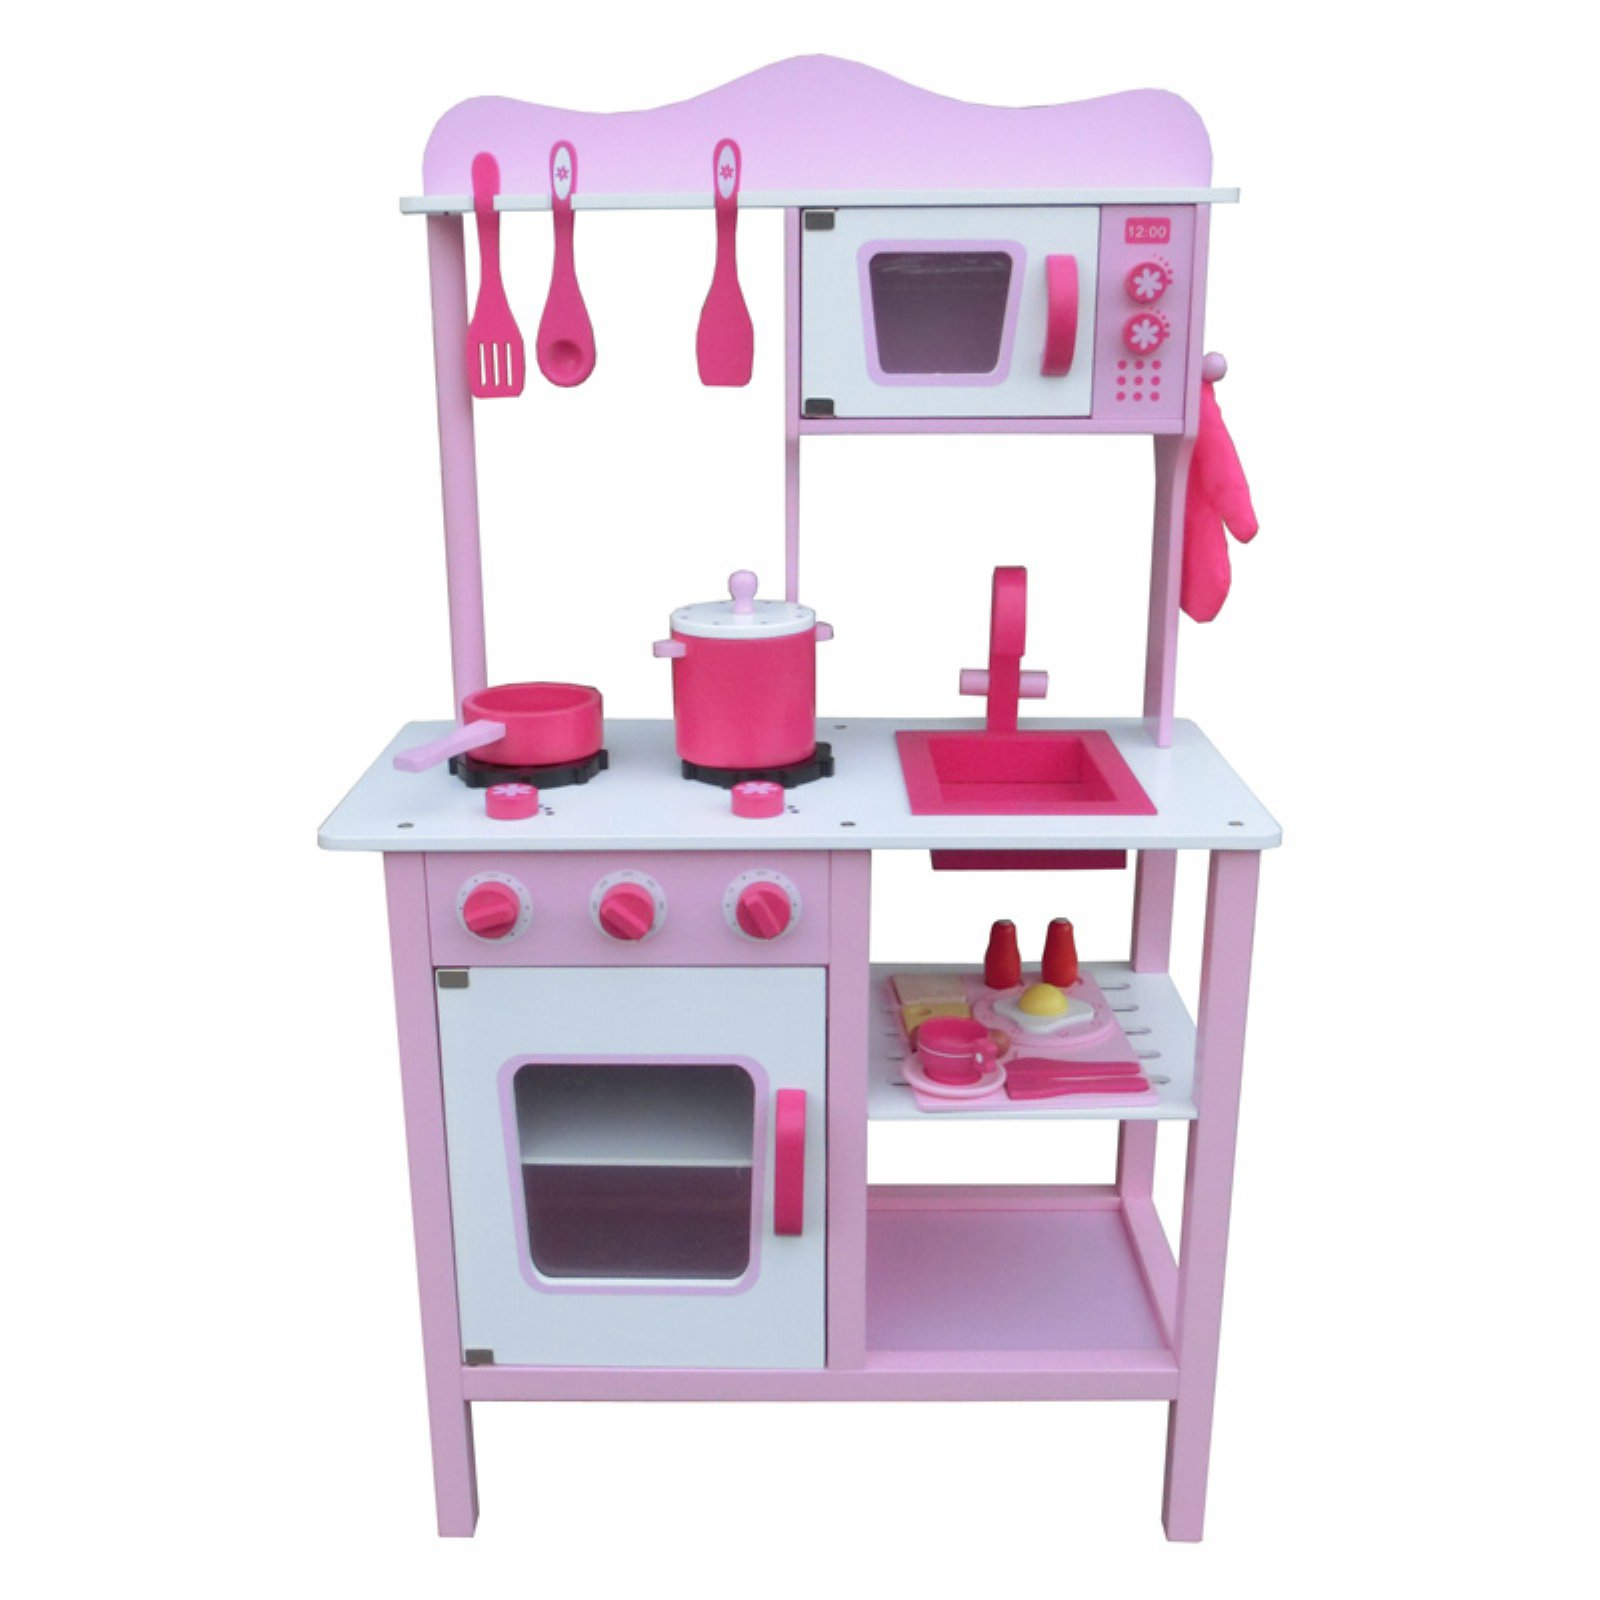 Berry Toys My Cute Pink Wooden Play Kitchen | Products in ...